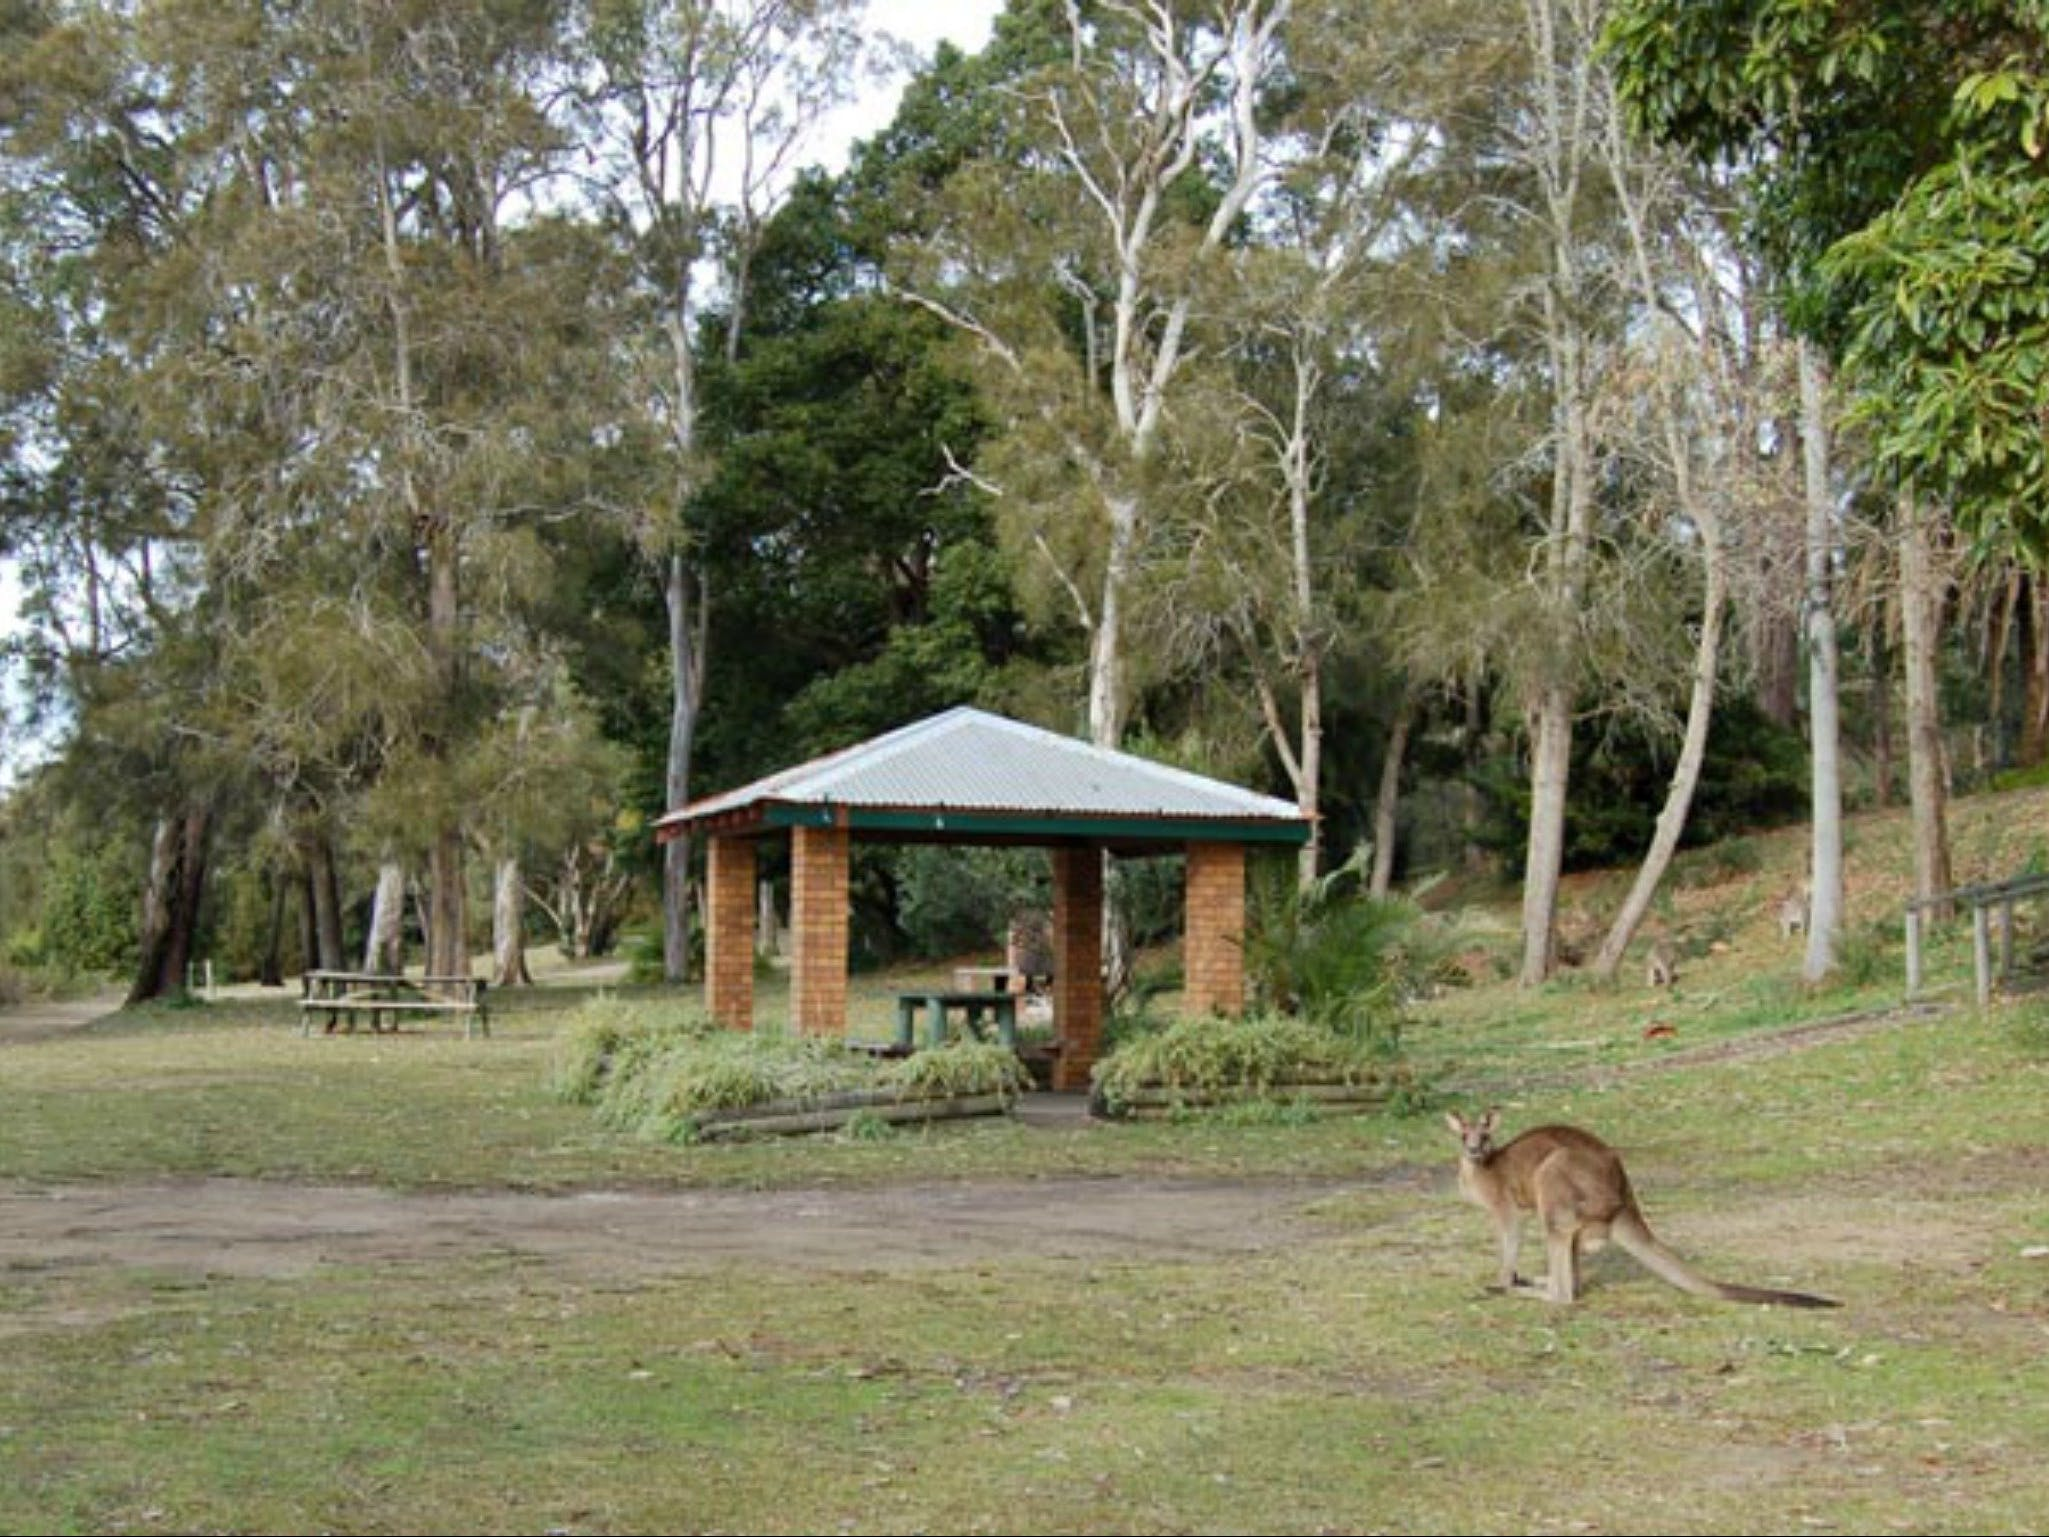 Sumber gambar: http://www.visitnsw.com/destinations/north-coast/lake-macquarie-area/morriset/attractions/morisset-picnic-area